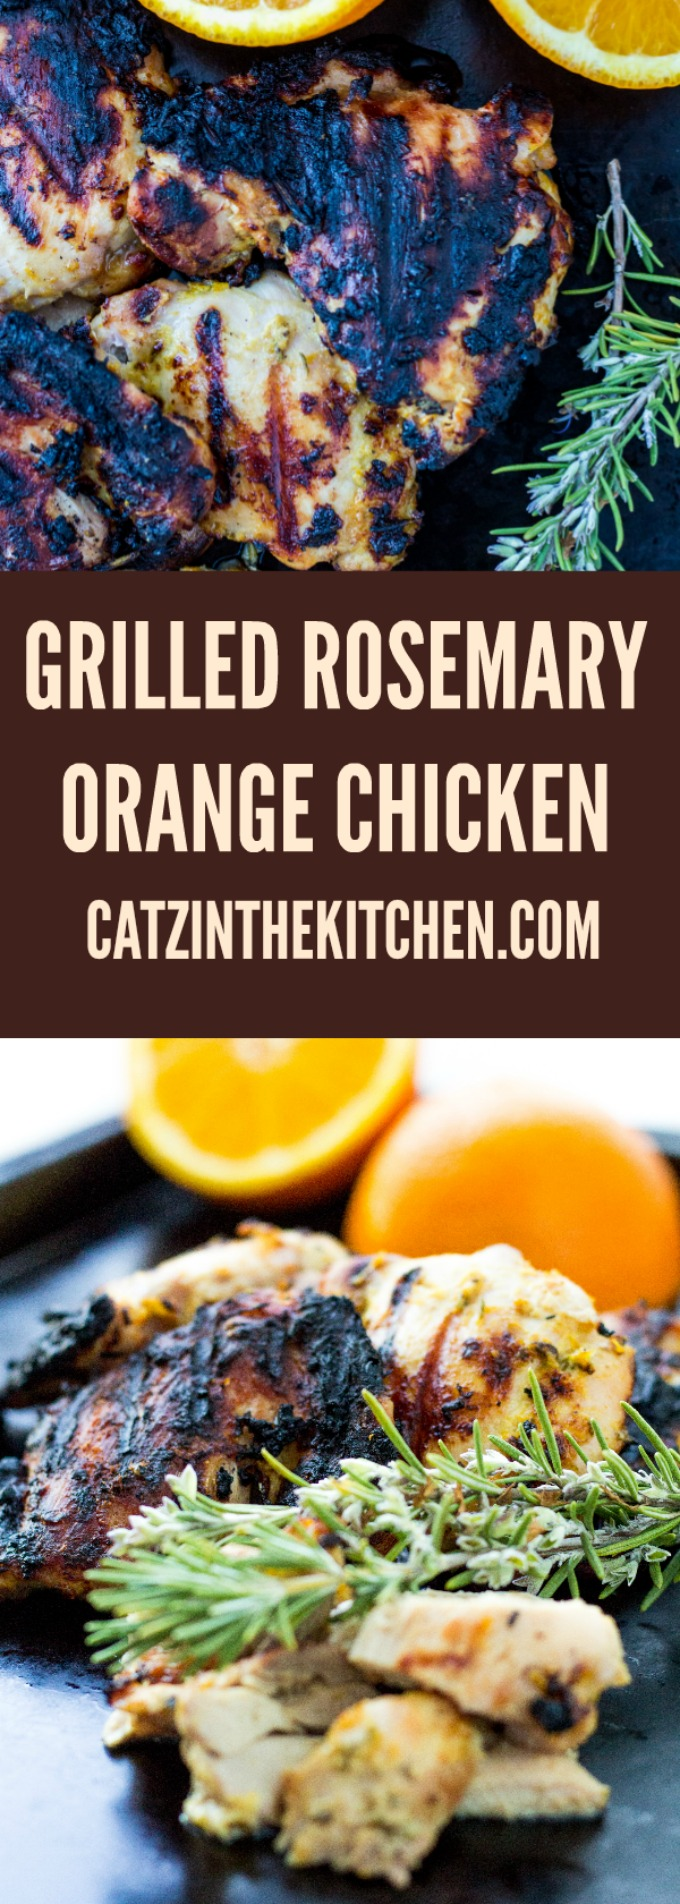 The easy marinade for this grilled rosemary orange chicken recipe is made with ingredients you've probably already got in your pantry!